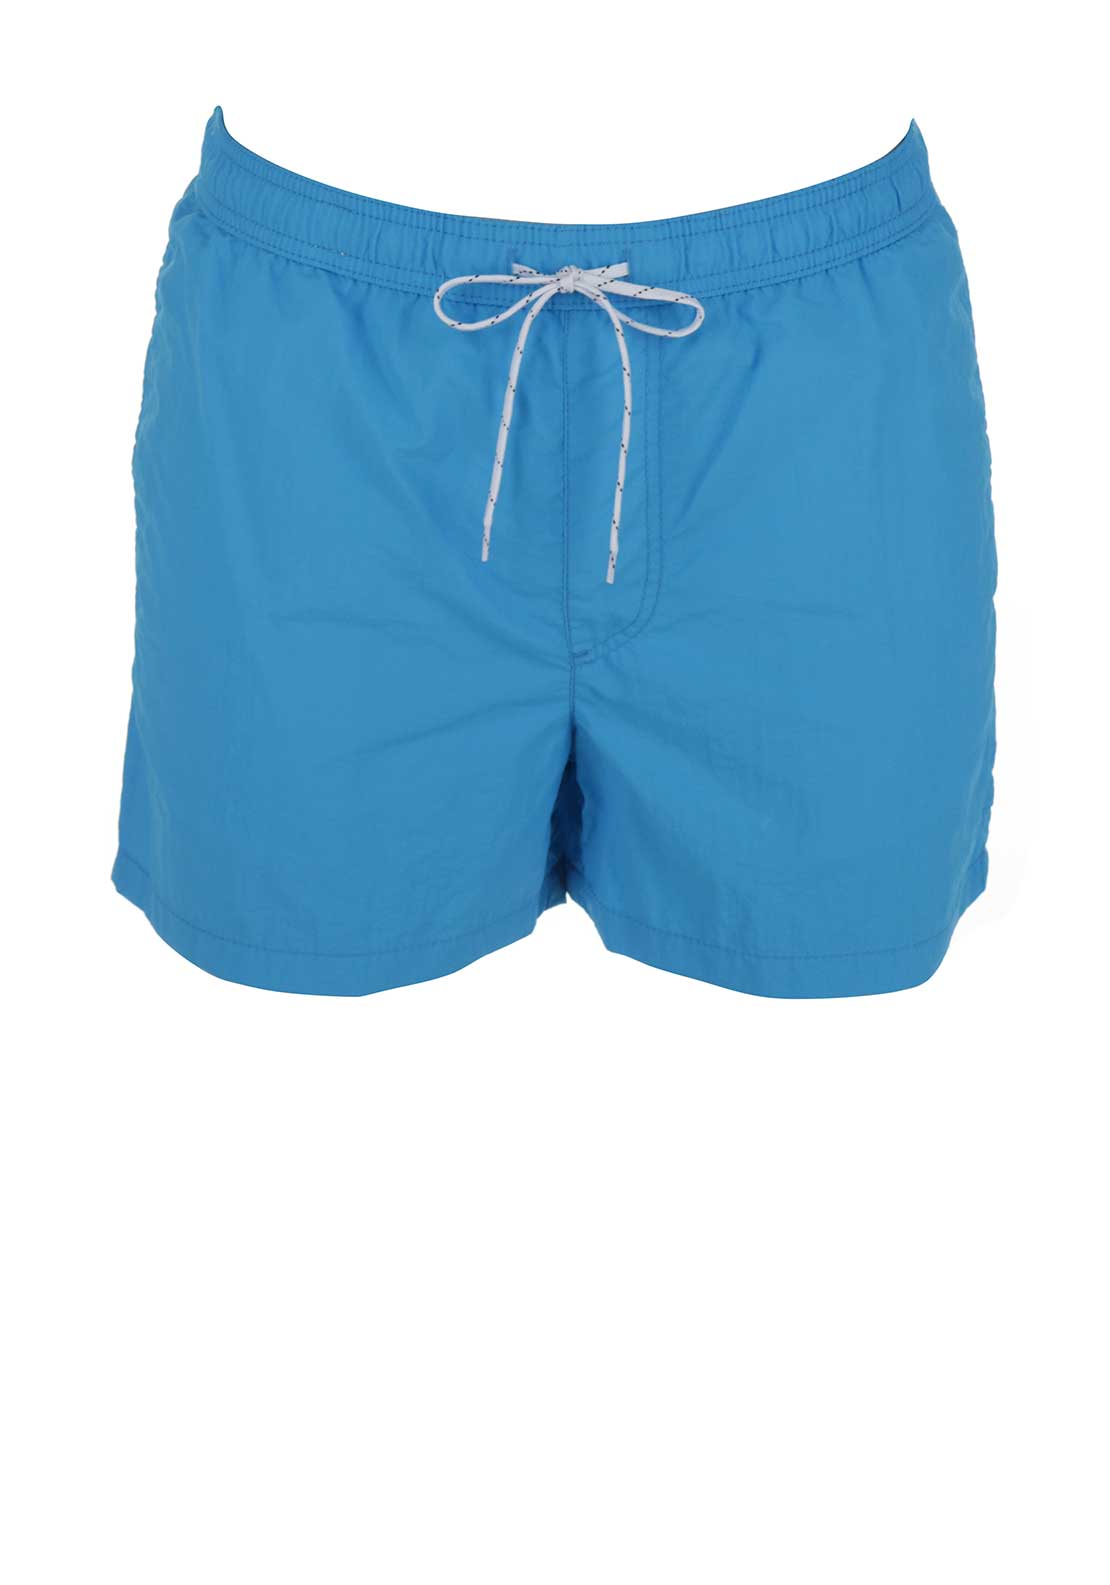 Jack & Jones Malibu Swim Shorts, Atomic Blue